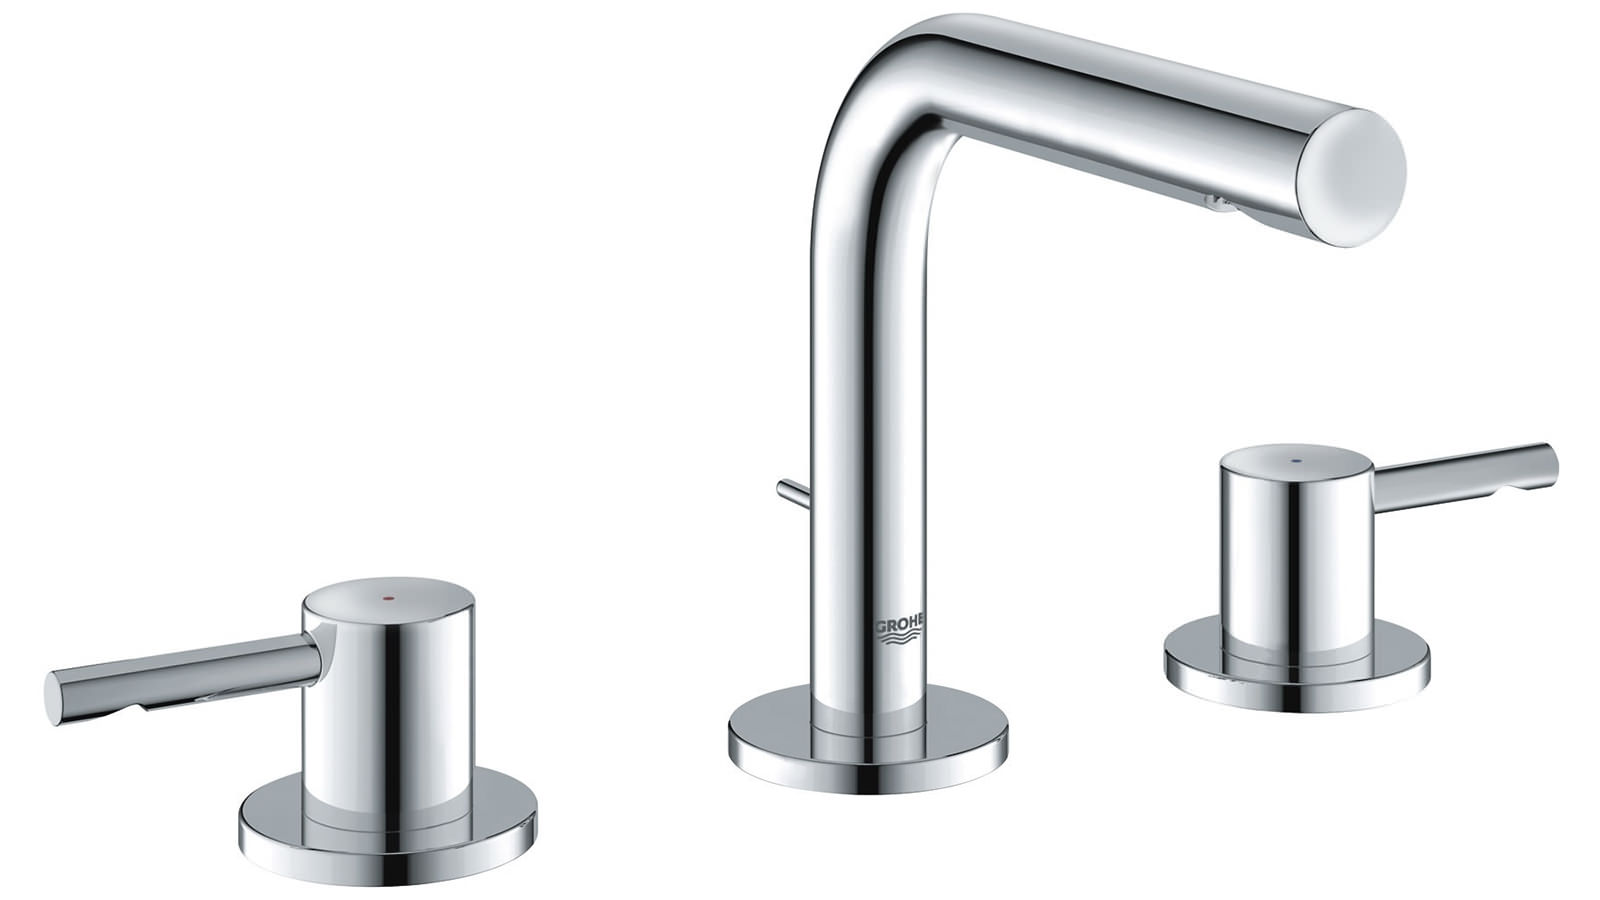 grohe essence three hole basin mixer tap with pop up waste. Black Bedroom Furniture Sets. Home Design Ideas